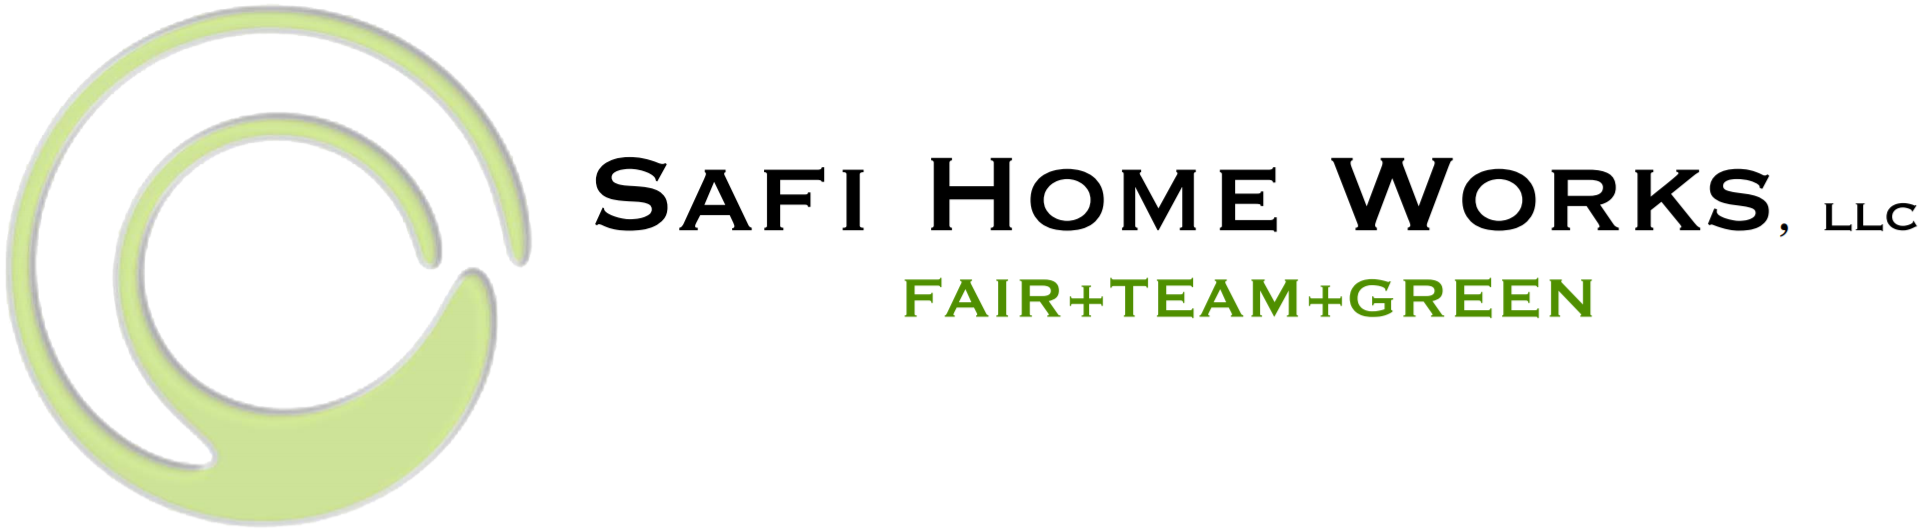 Safi Home Works Logo